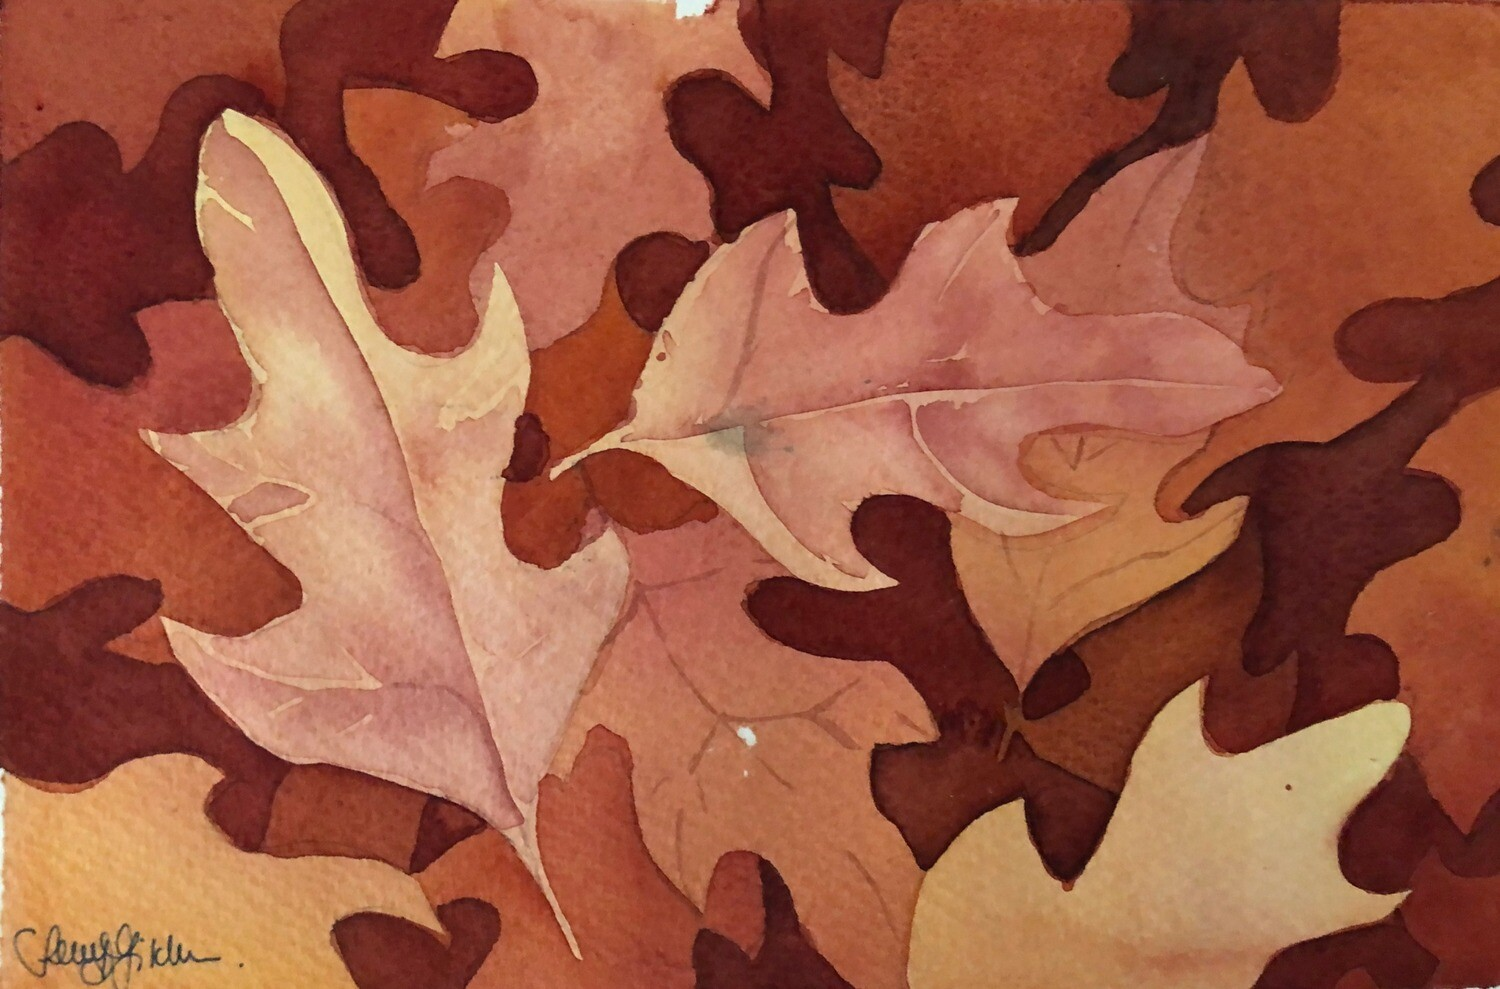 PAINTING for Sale: Shades of Russet - Medium Small - 1/8th sheet original watercolour by Jenny Gilchrist